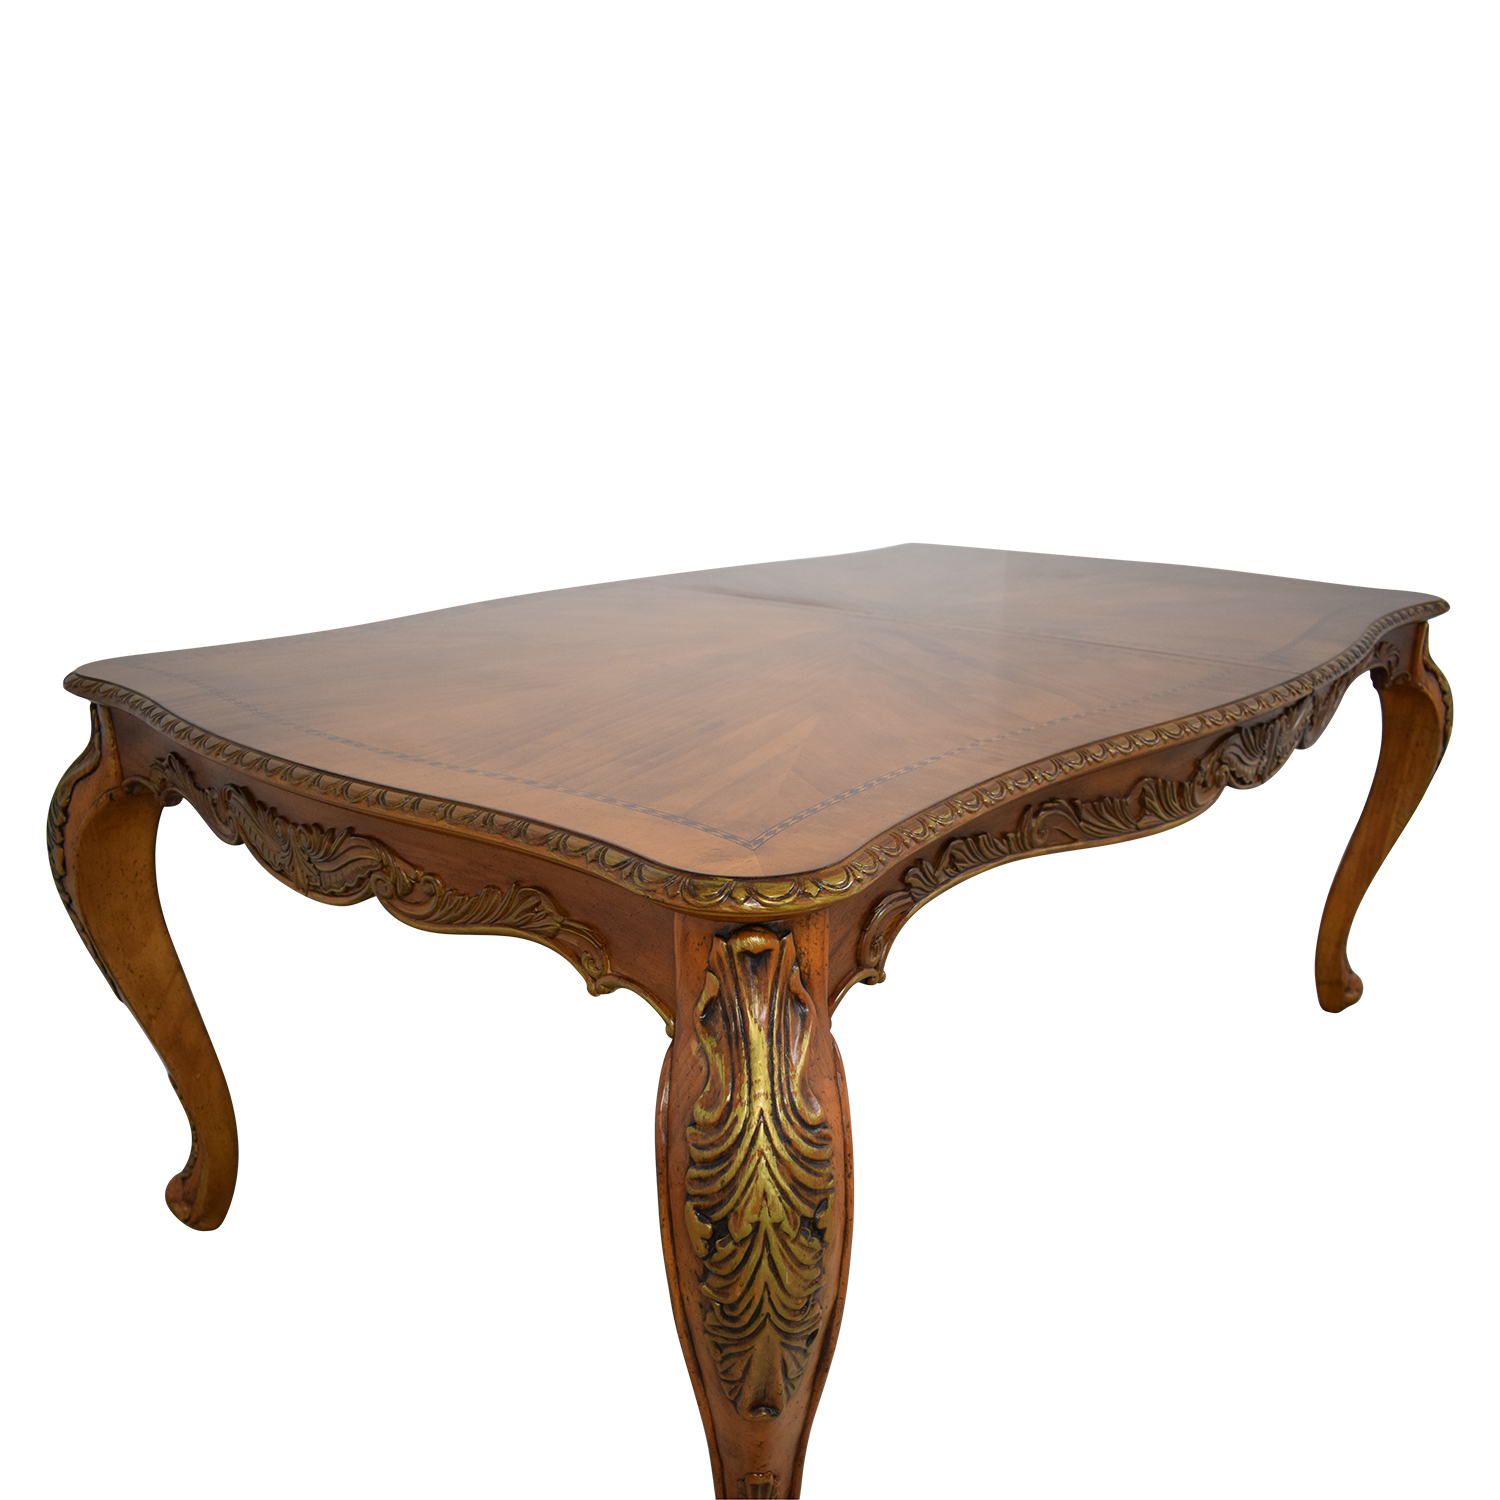 Raymour & Flanigan Raymour & Flanigan Expanding Dining Table on sale